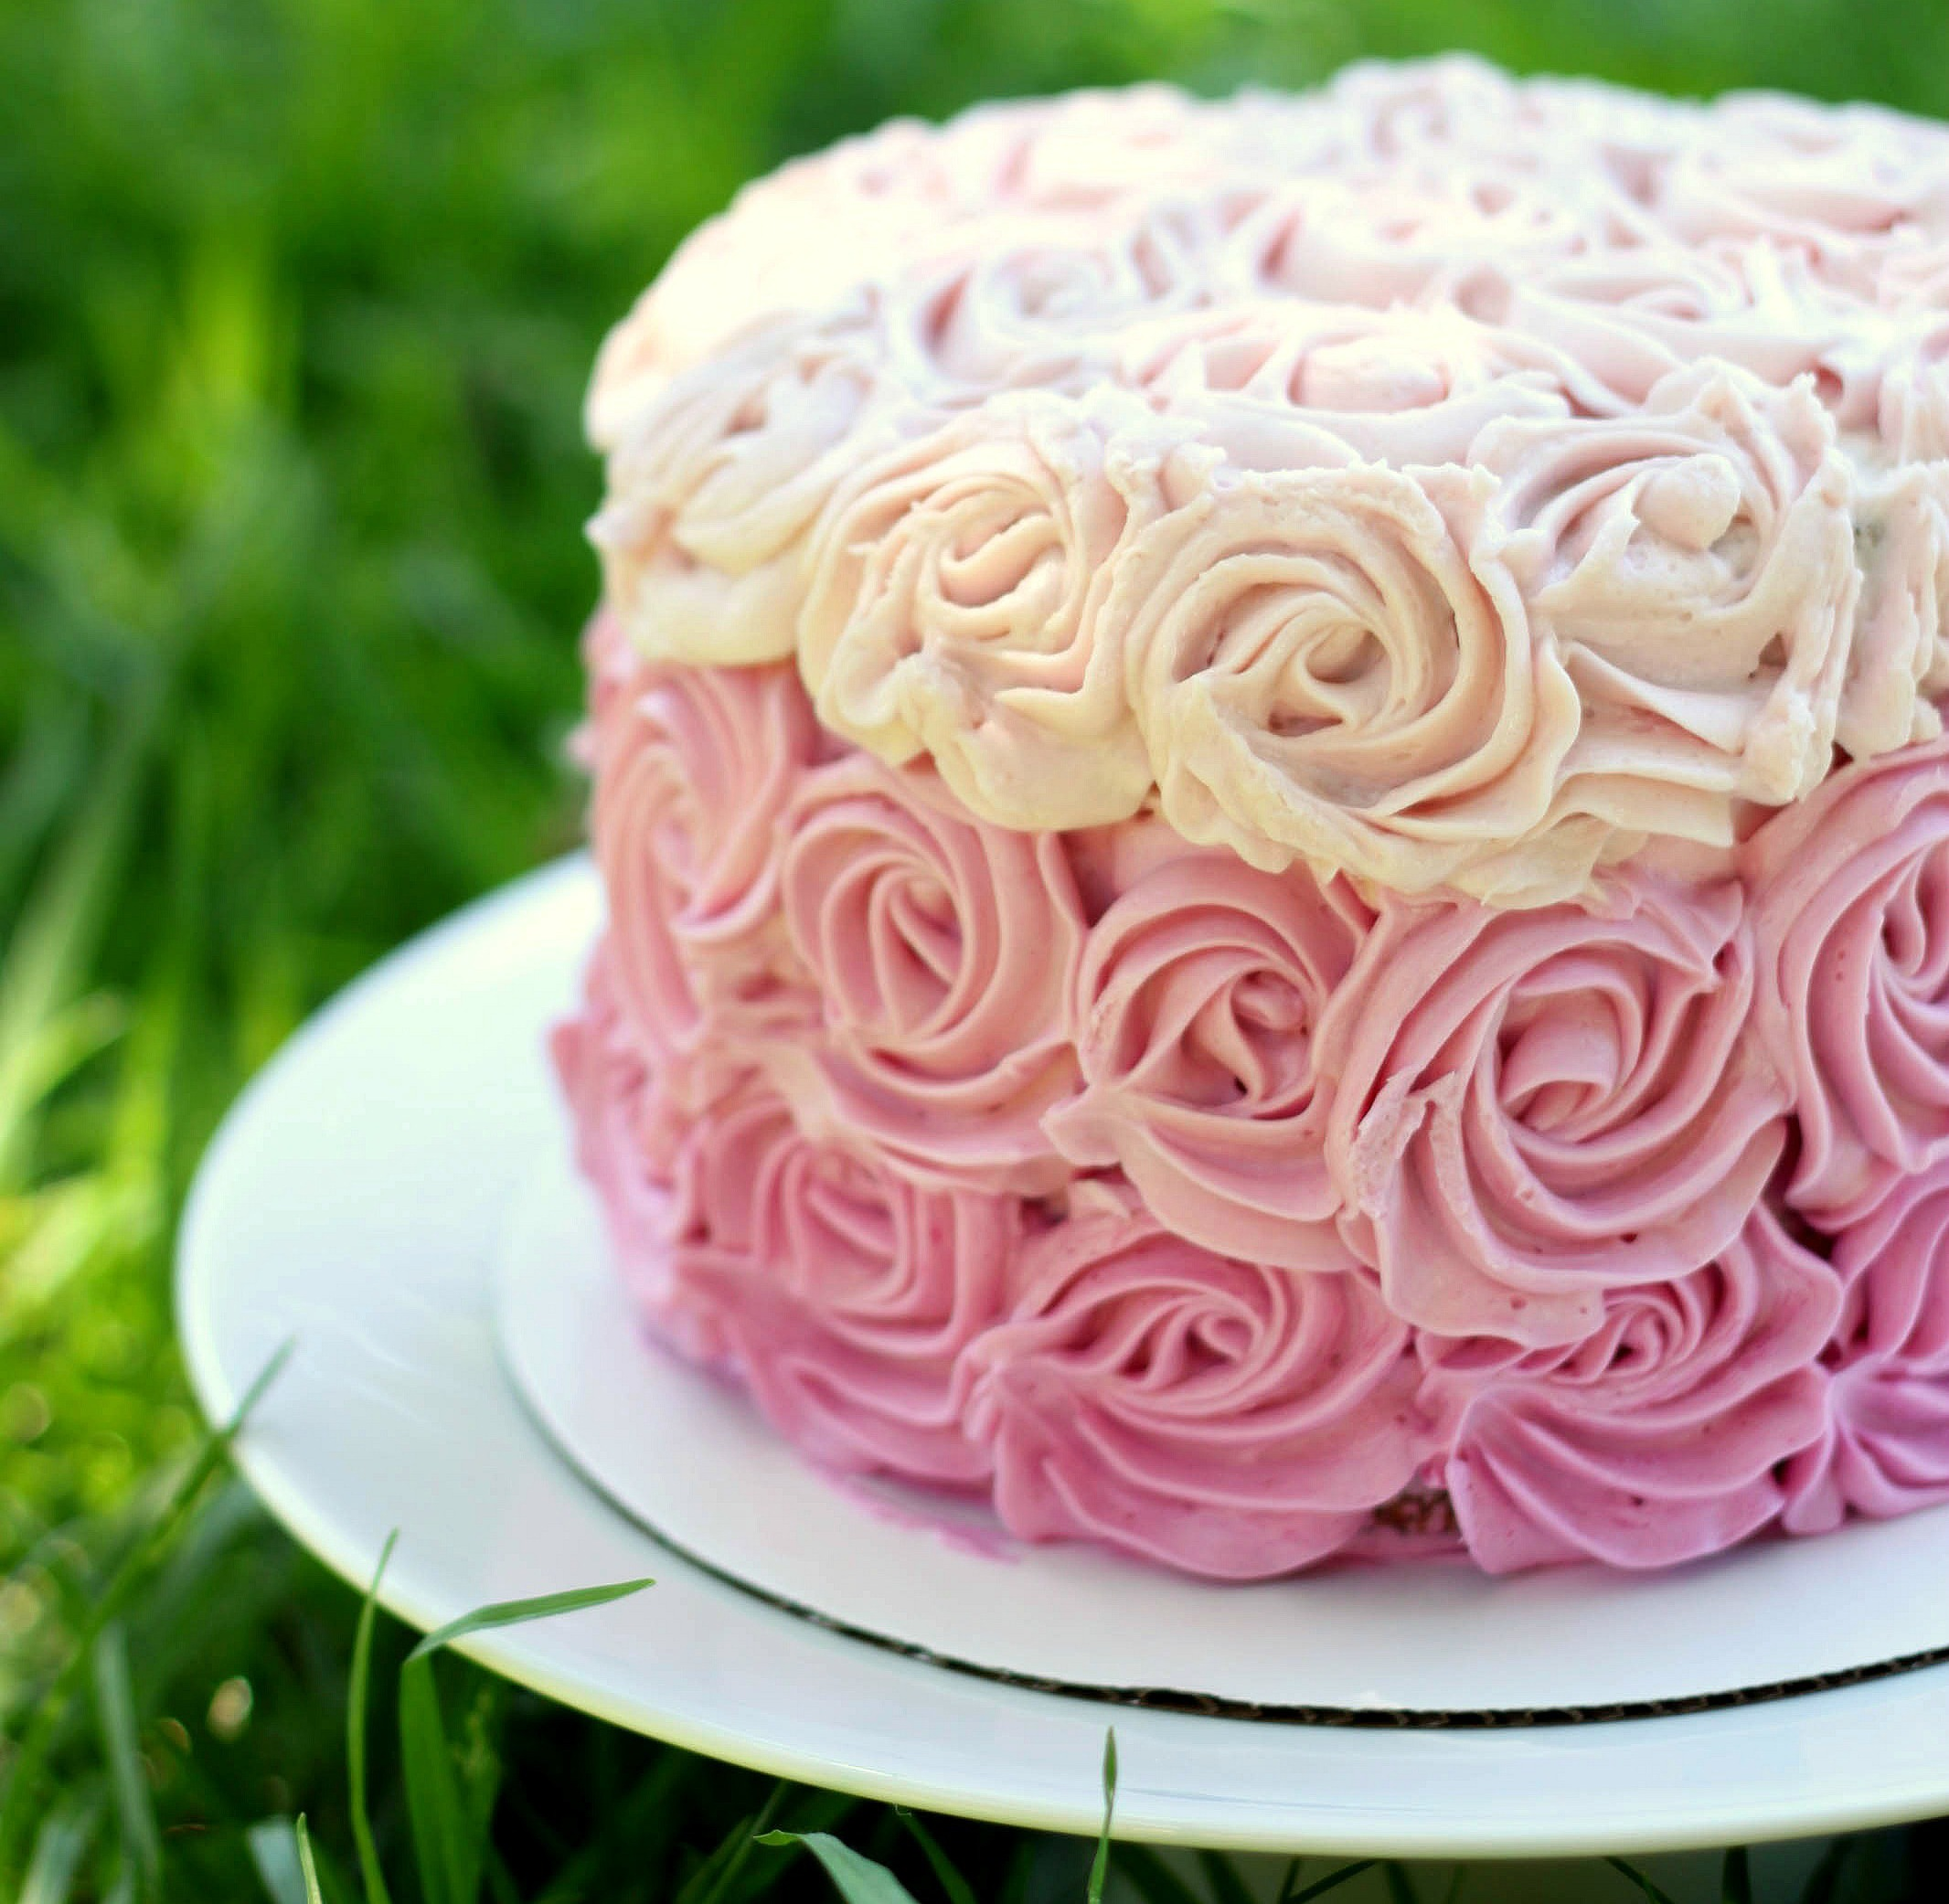 Ombre rose cake | 52 Kitchen Adventures